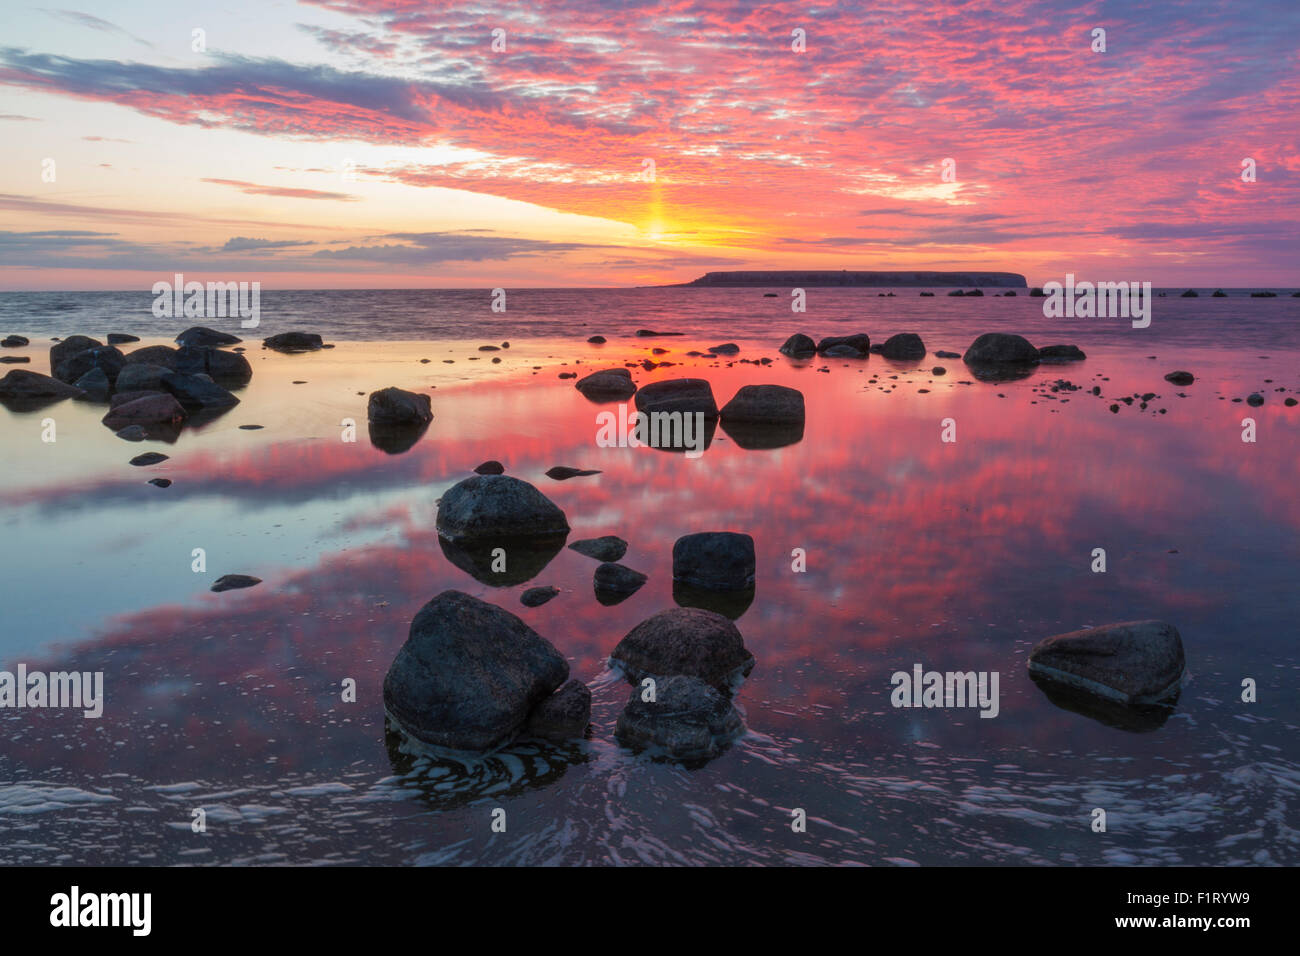 Sunset at the Coast of Eksta on Gotland, Sweden. Warm red colors reflecting in the water and the Islands of Karls - Stock Image